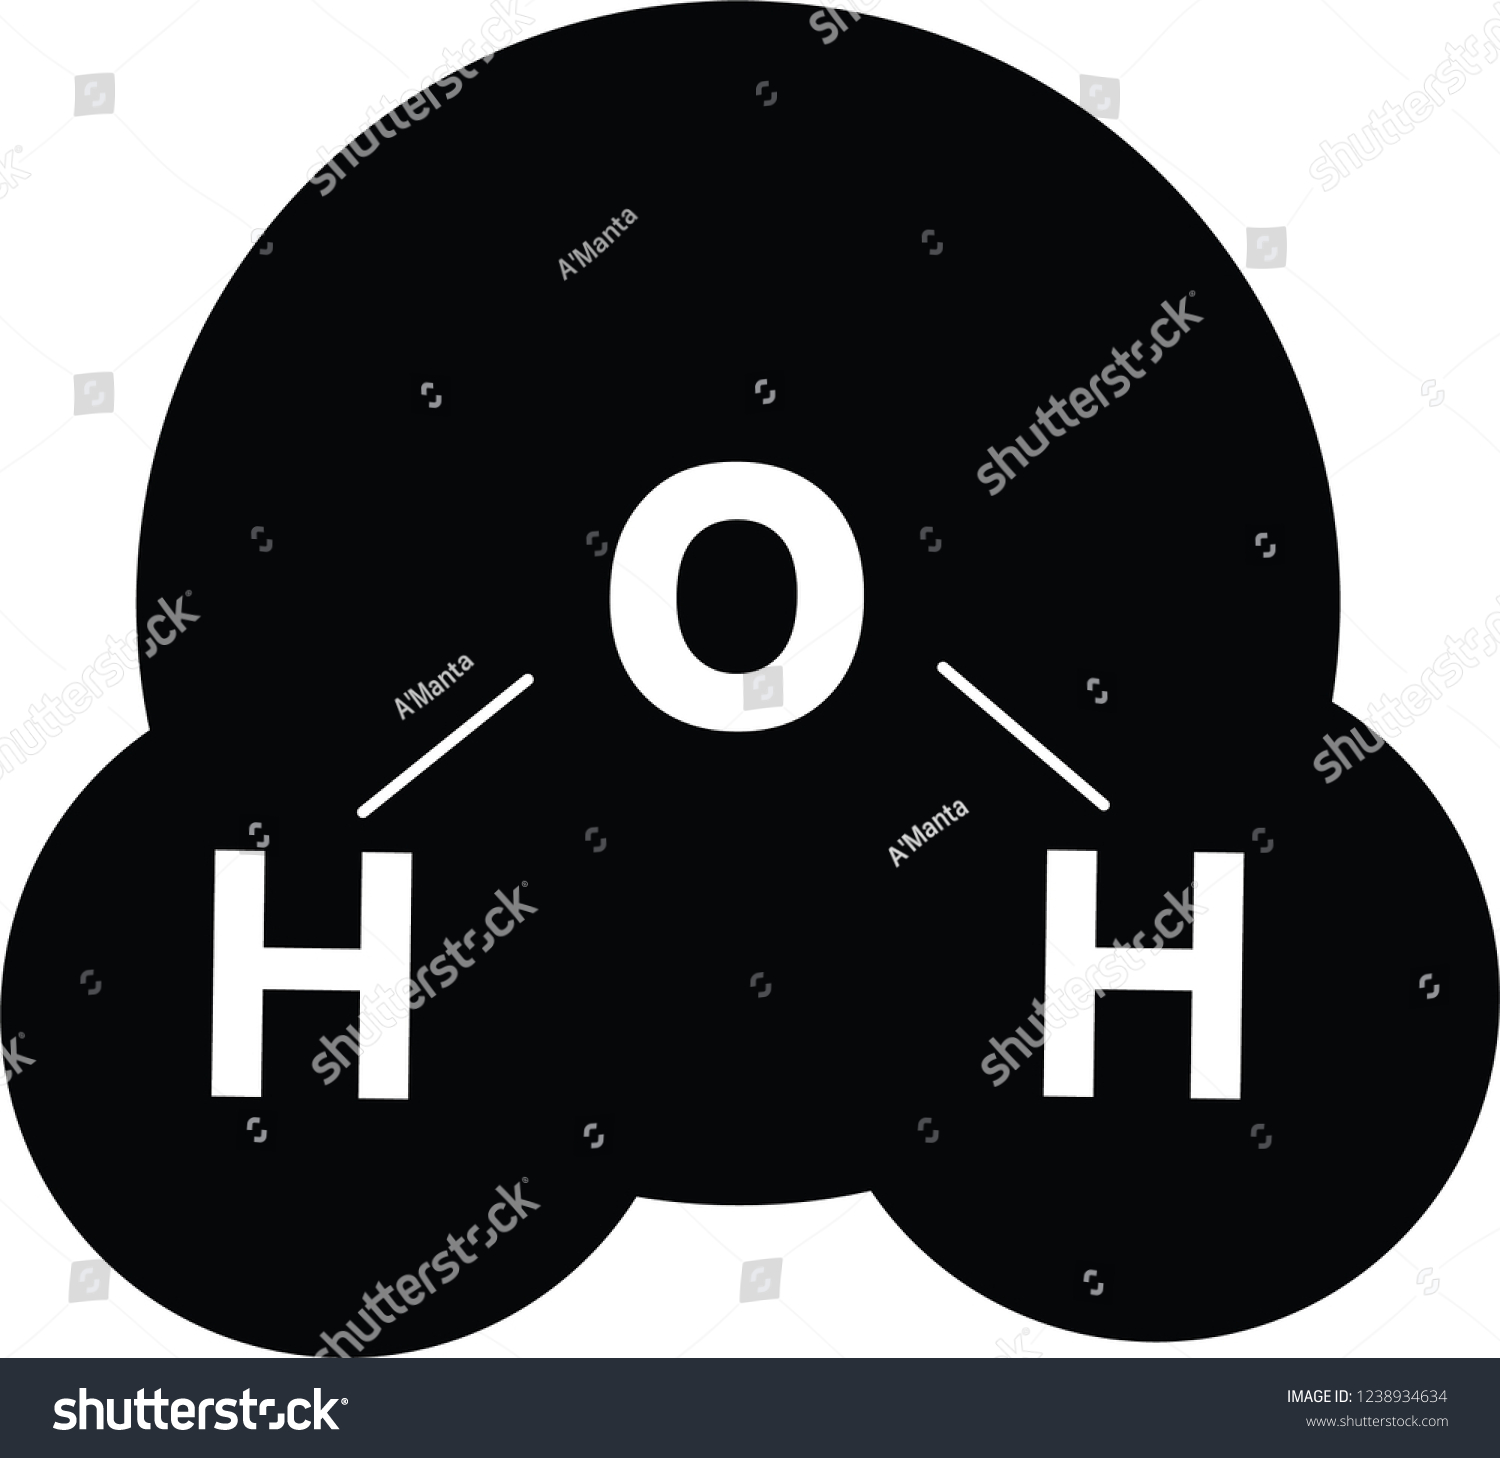 Water Molecule Diagram Black And White.Vector Illustration Water Molecule Icon Black Stock Vector